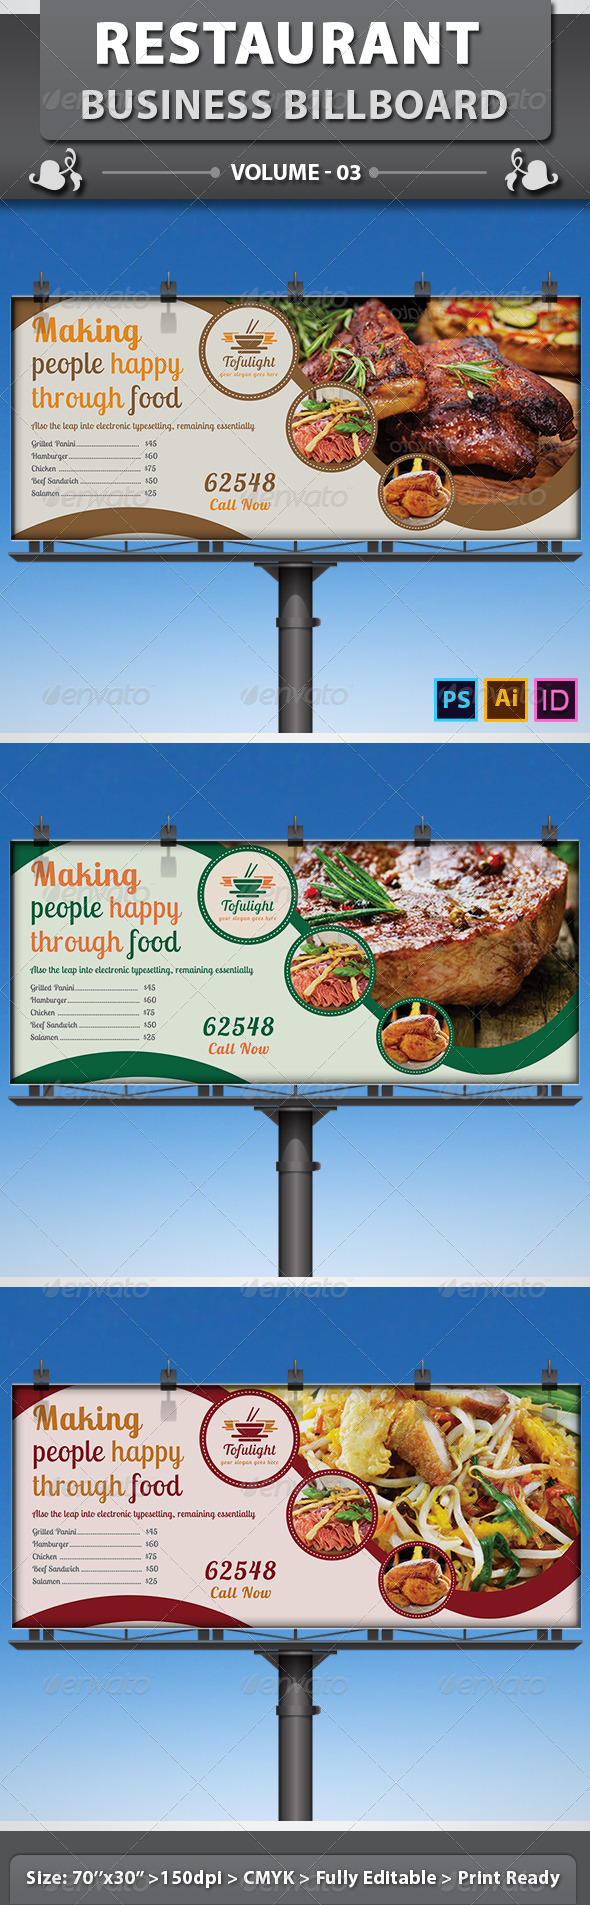 GraphicRiver Restaurant Business Billboard Volume 3 6556591